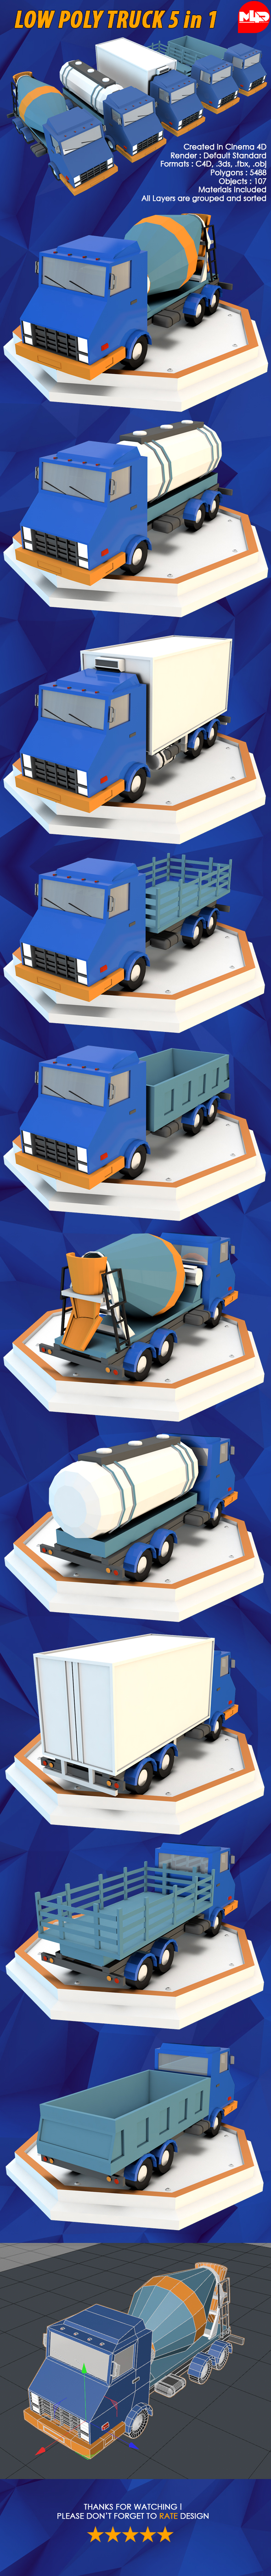 Low Poly Truck 5 in 1 - 3DOcean Item for Sale